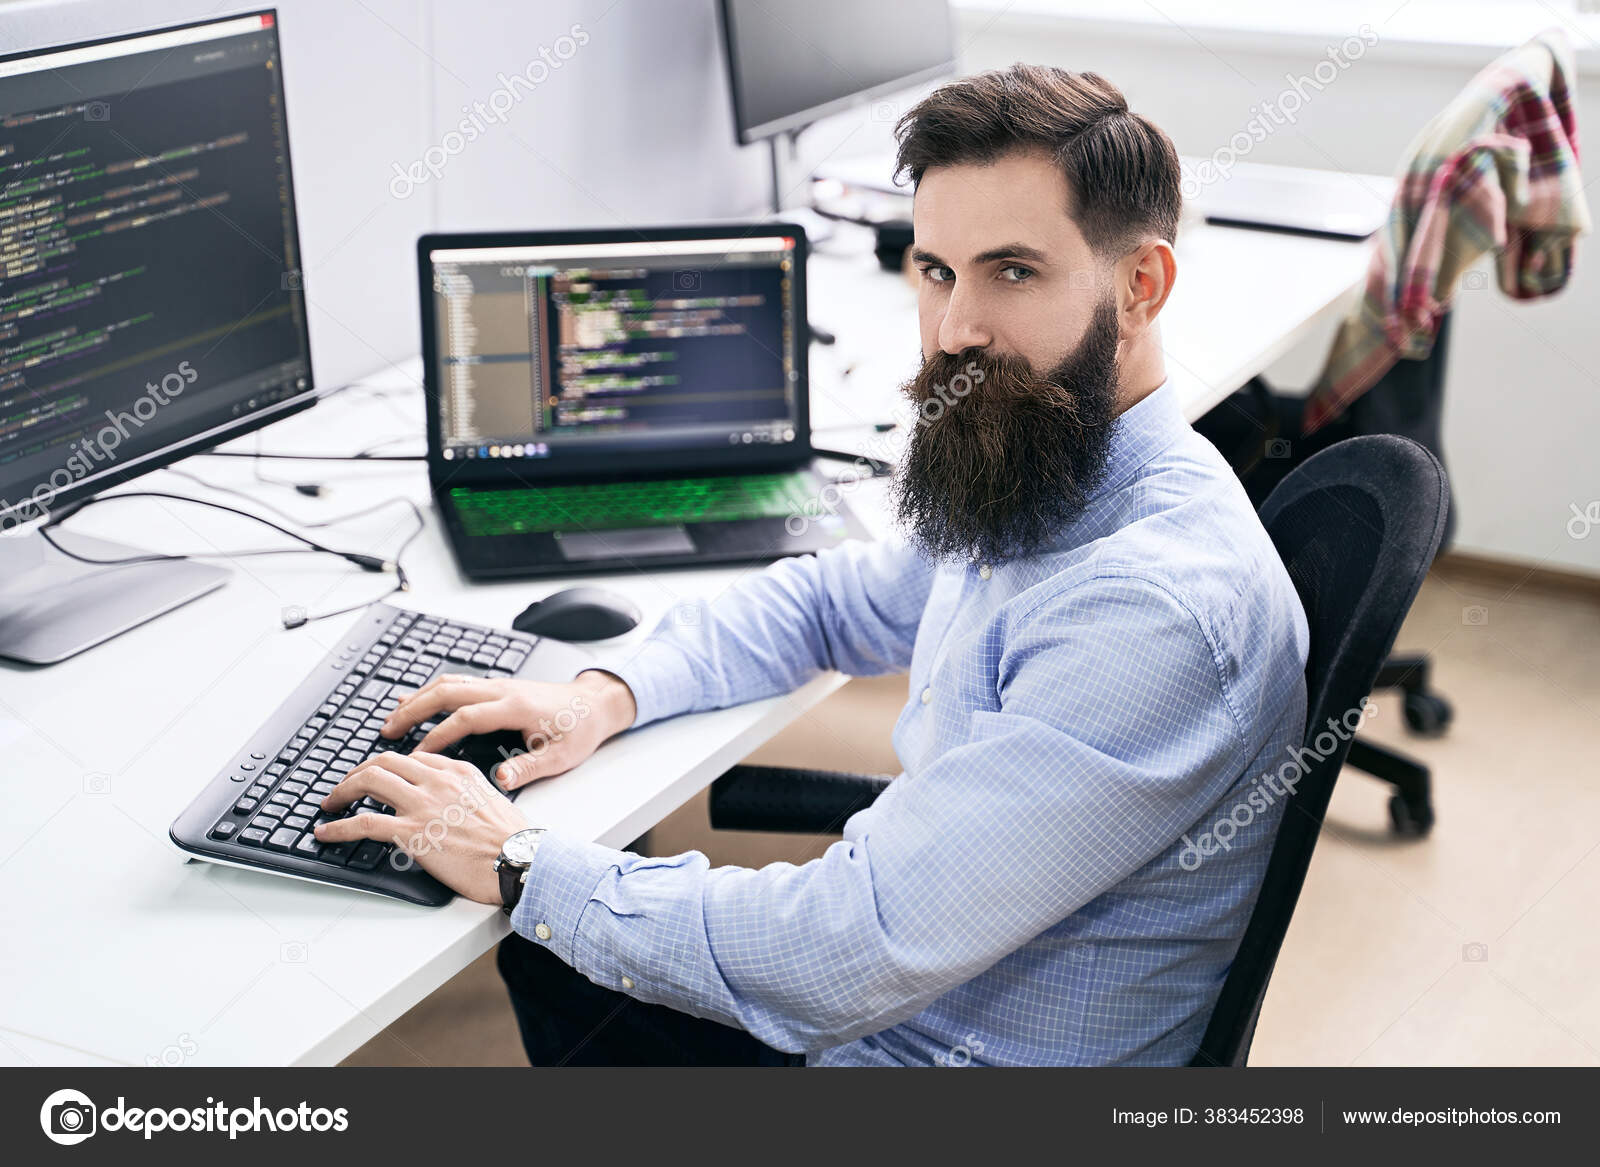 Serious computer programmer developer working in IT office, sitting at desk and coding, working on a project in software development company or startup. High quality image. Stock Photo by ©oleksandrberezko 383452398